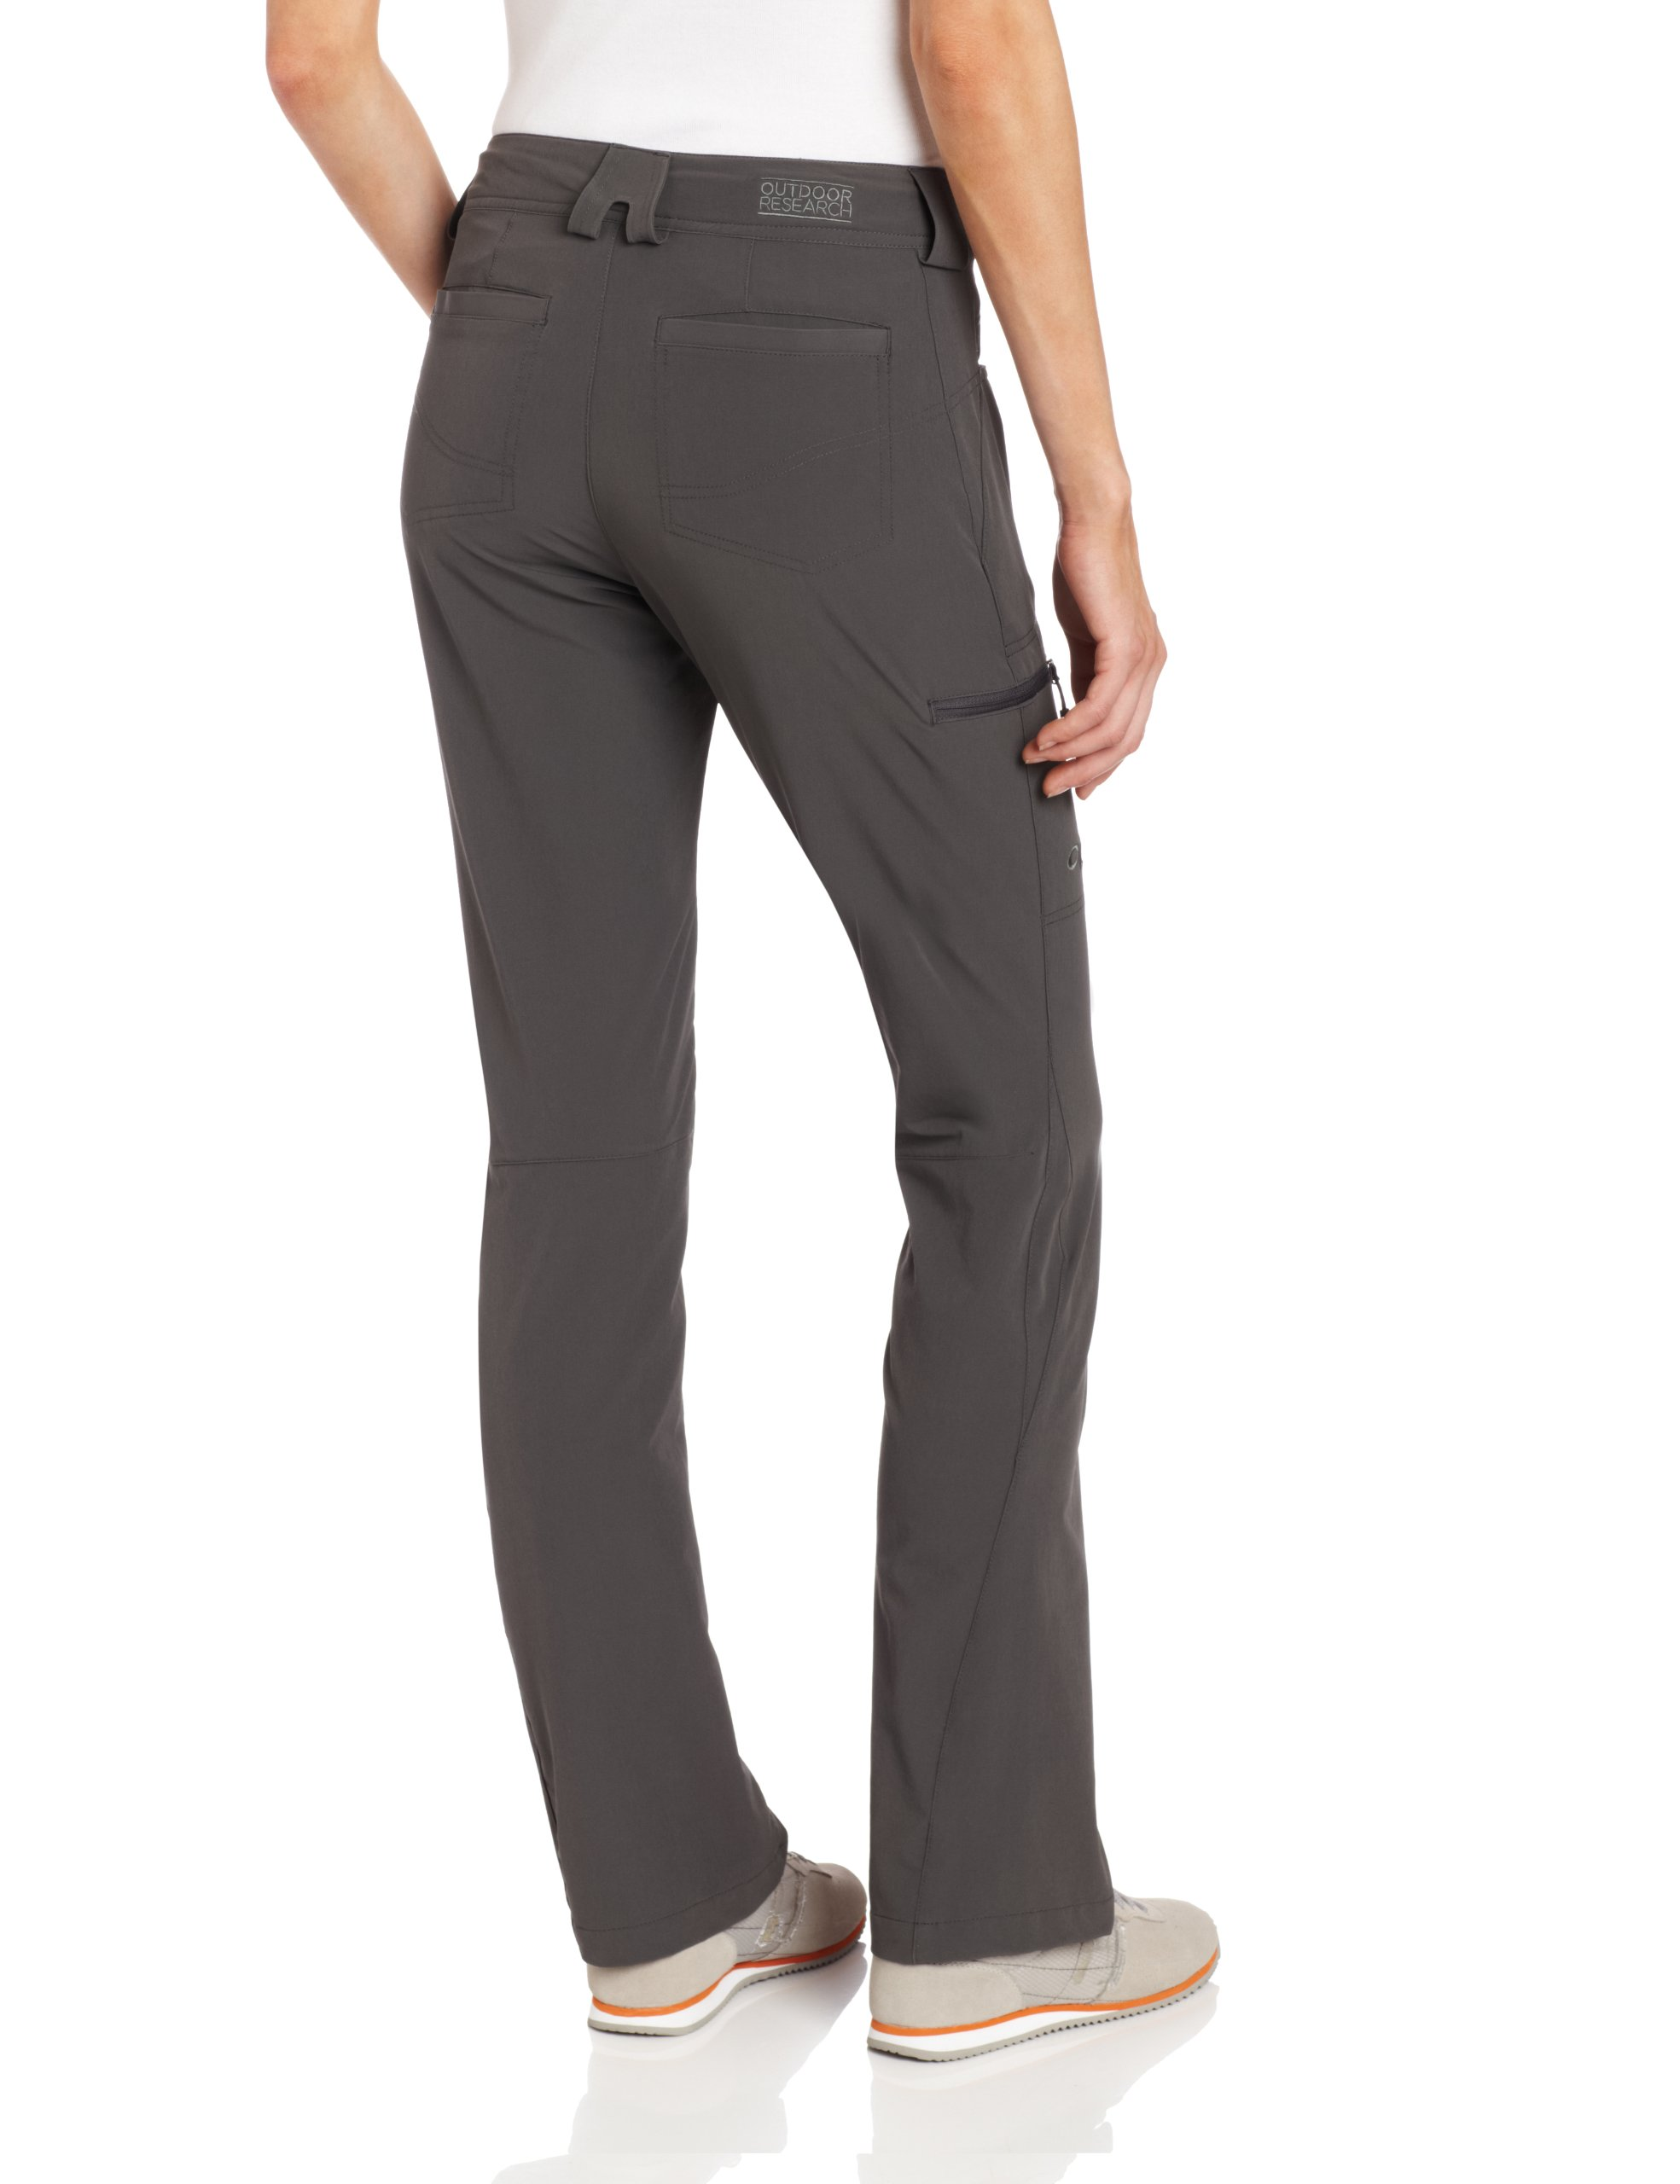 Outdoor Research Women's Voodoo Pant, Charcoal, 4 by Outdoor Research